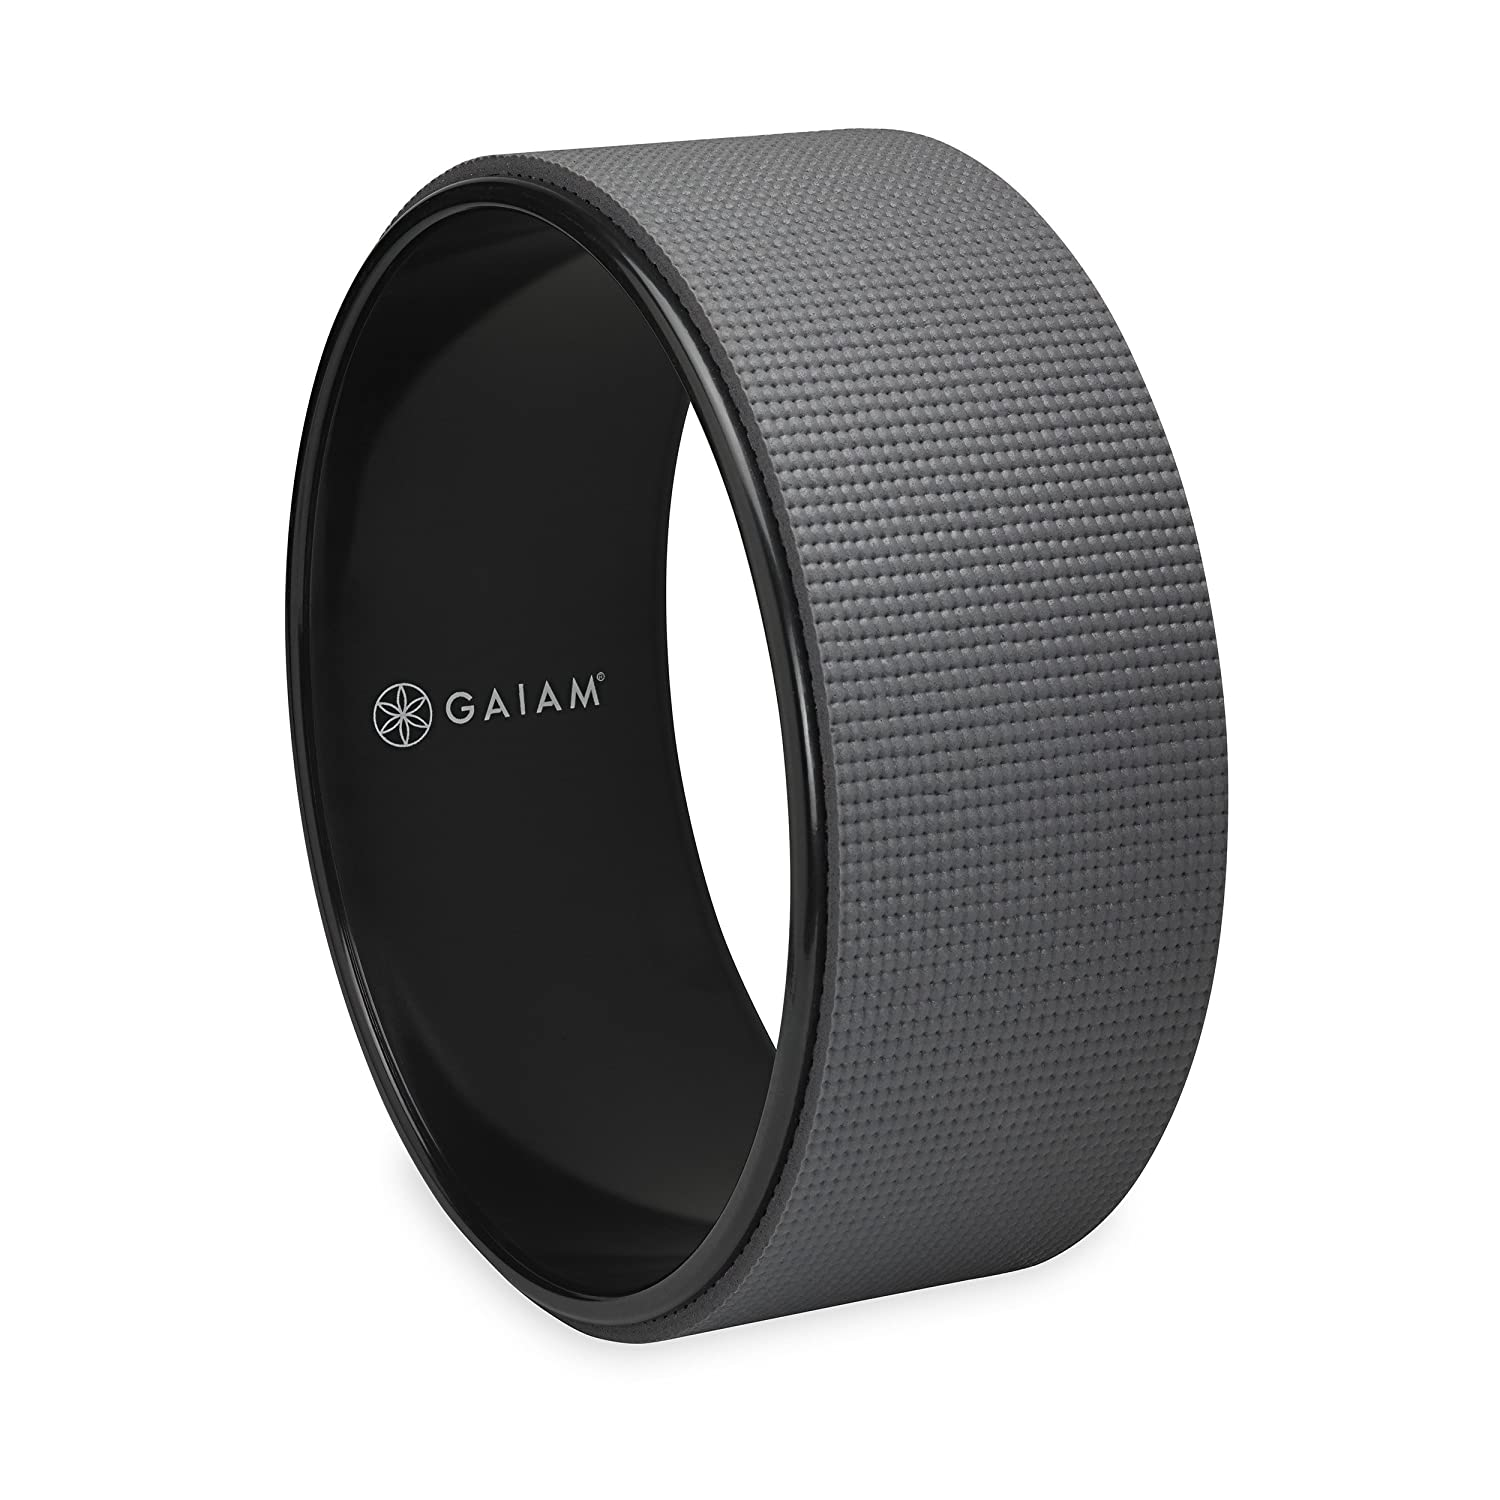 Gaiam Yoga rueda - 05-62573, Negro / Gris: Amazon.es ...